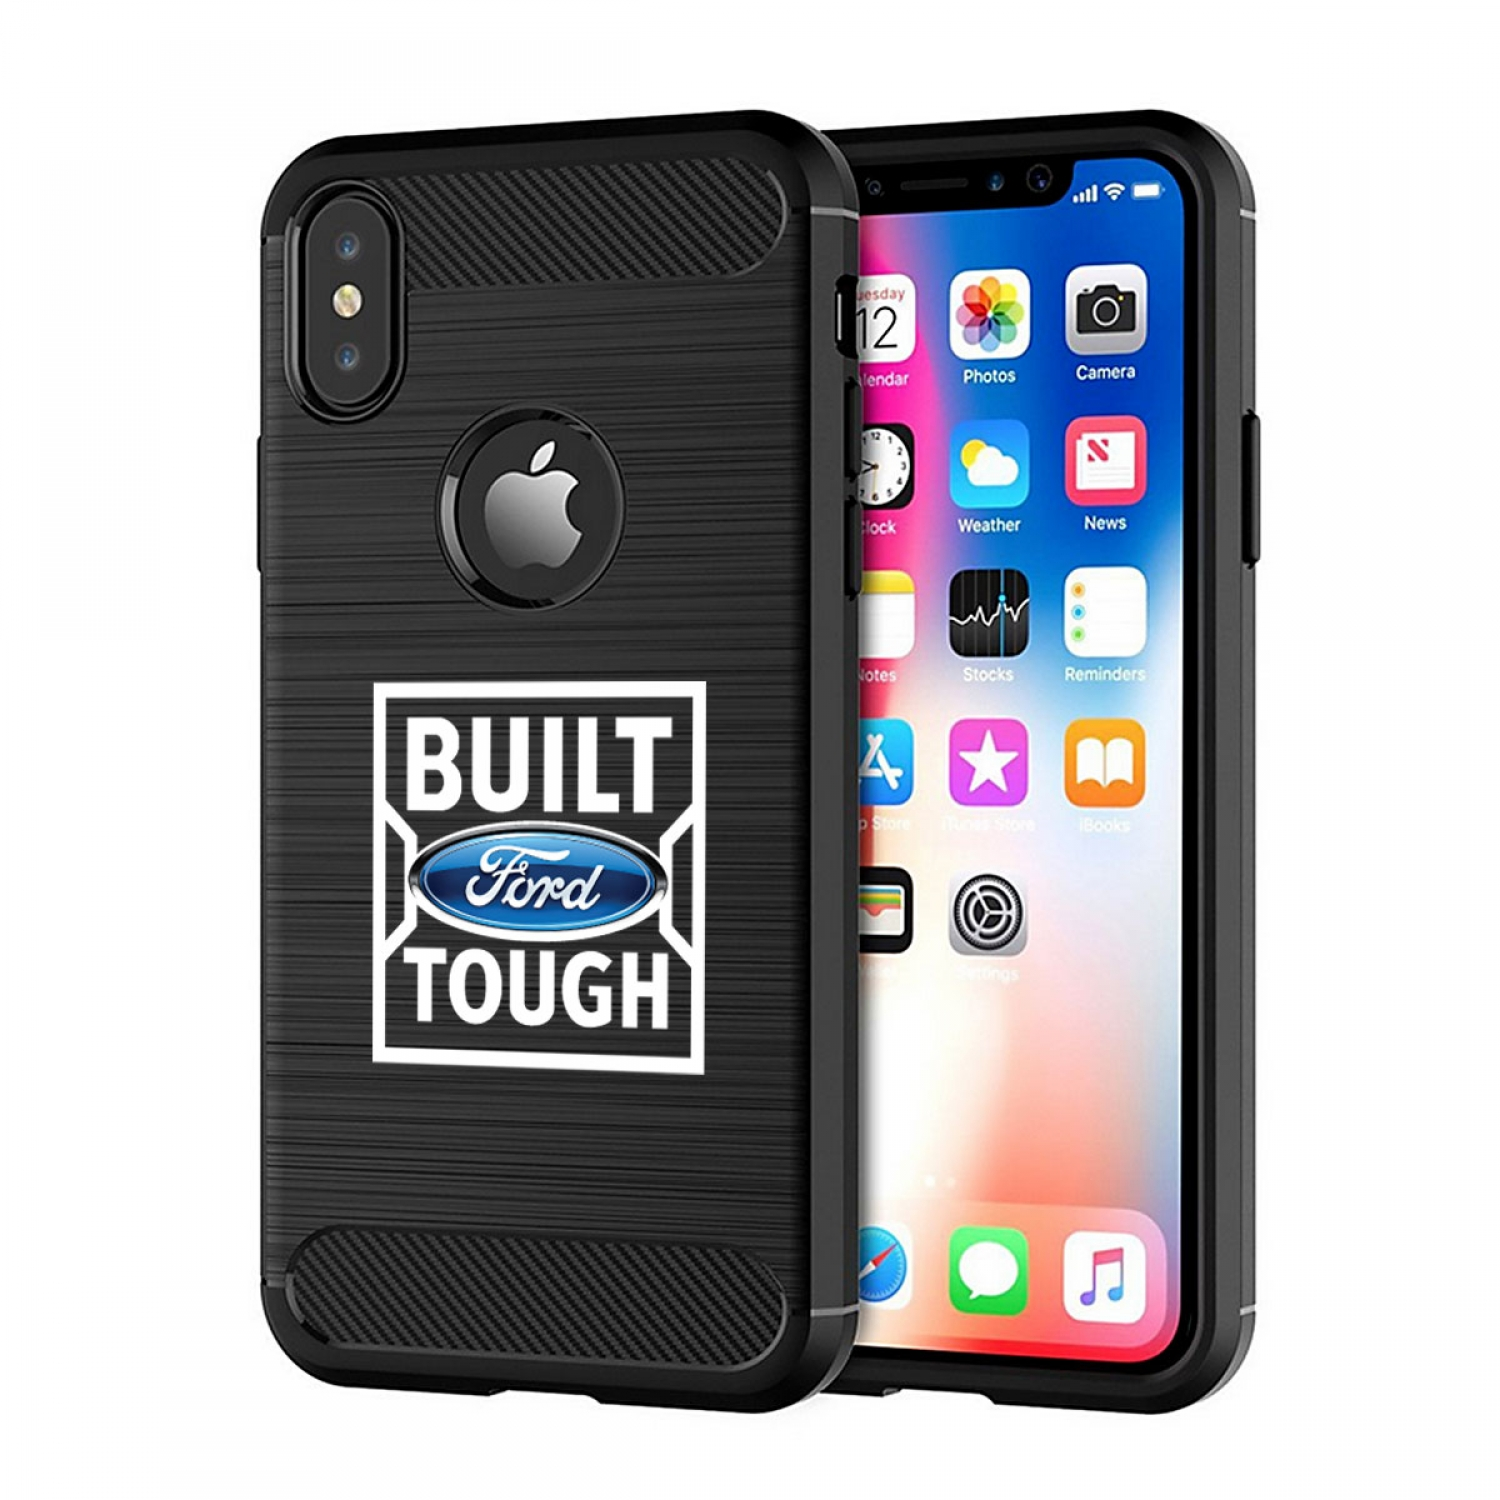 Ford Built Ford Tough iPhone X TPU Shockproof Black Carbon Fiber Textures Stripes Cell Phone Case